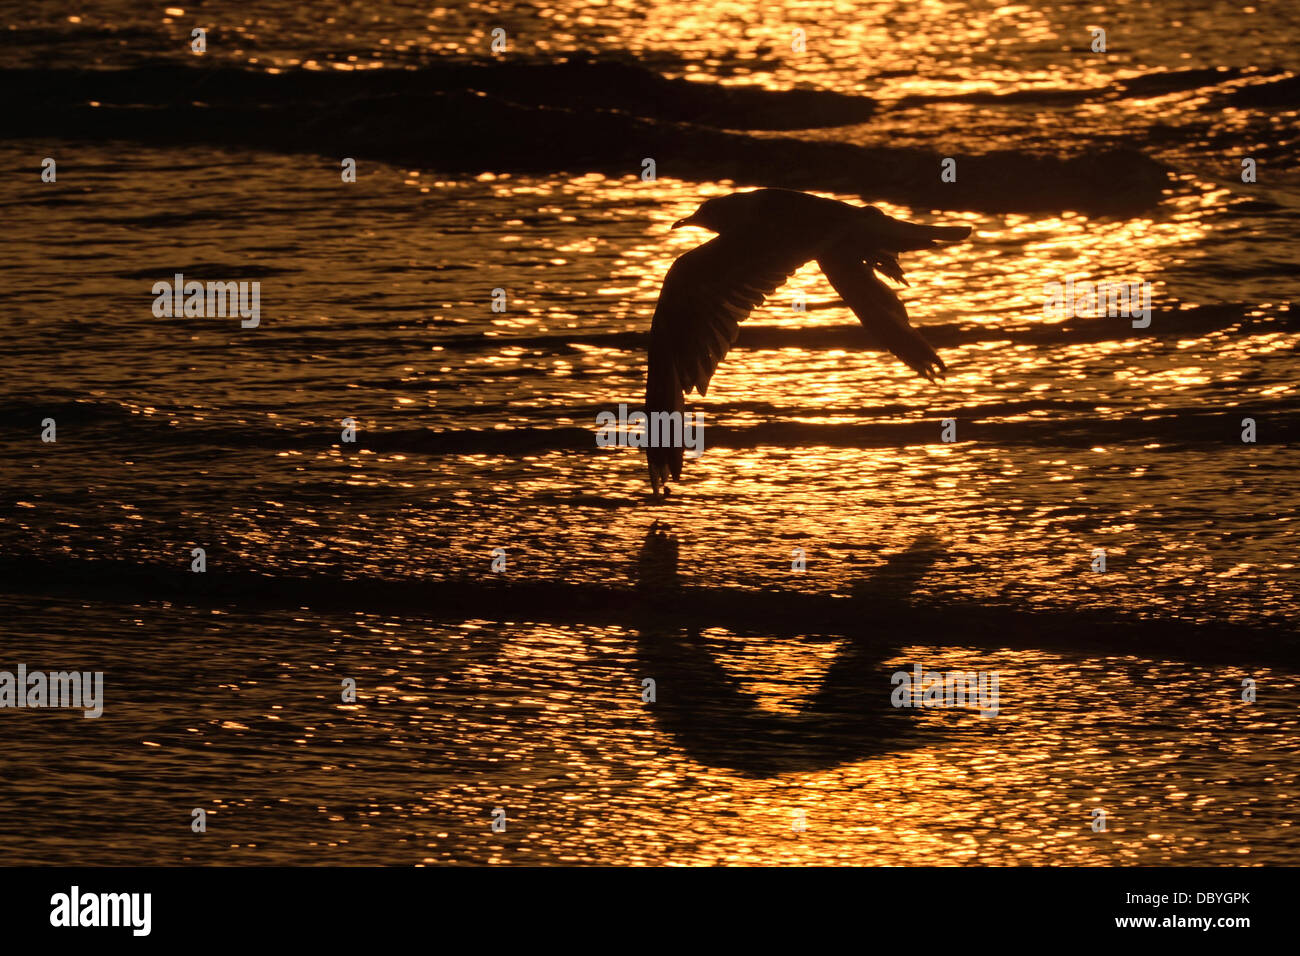 A seagull flies along the beach, while the sun sets in the background, in De Panne, Belgium, 02 August 2013. Photo: - Stock Image